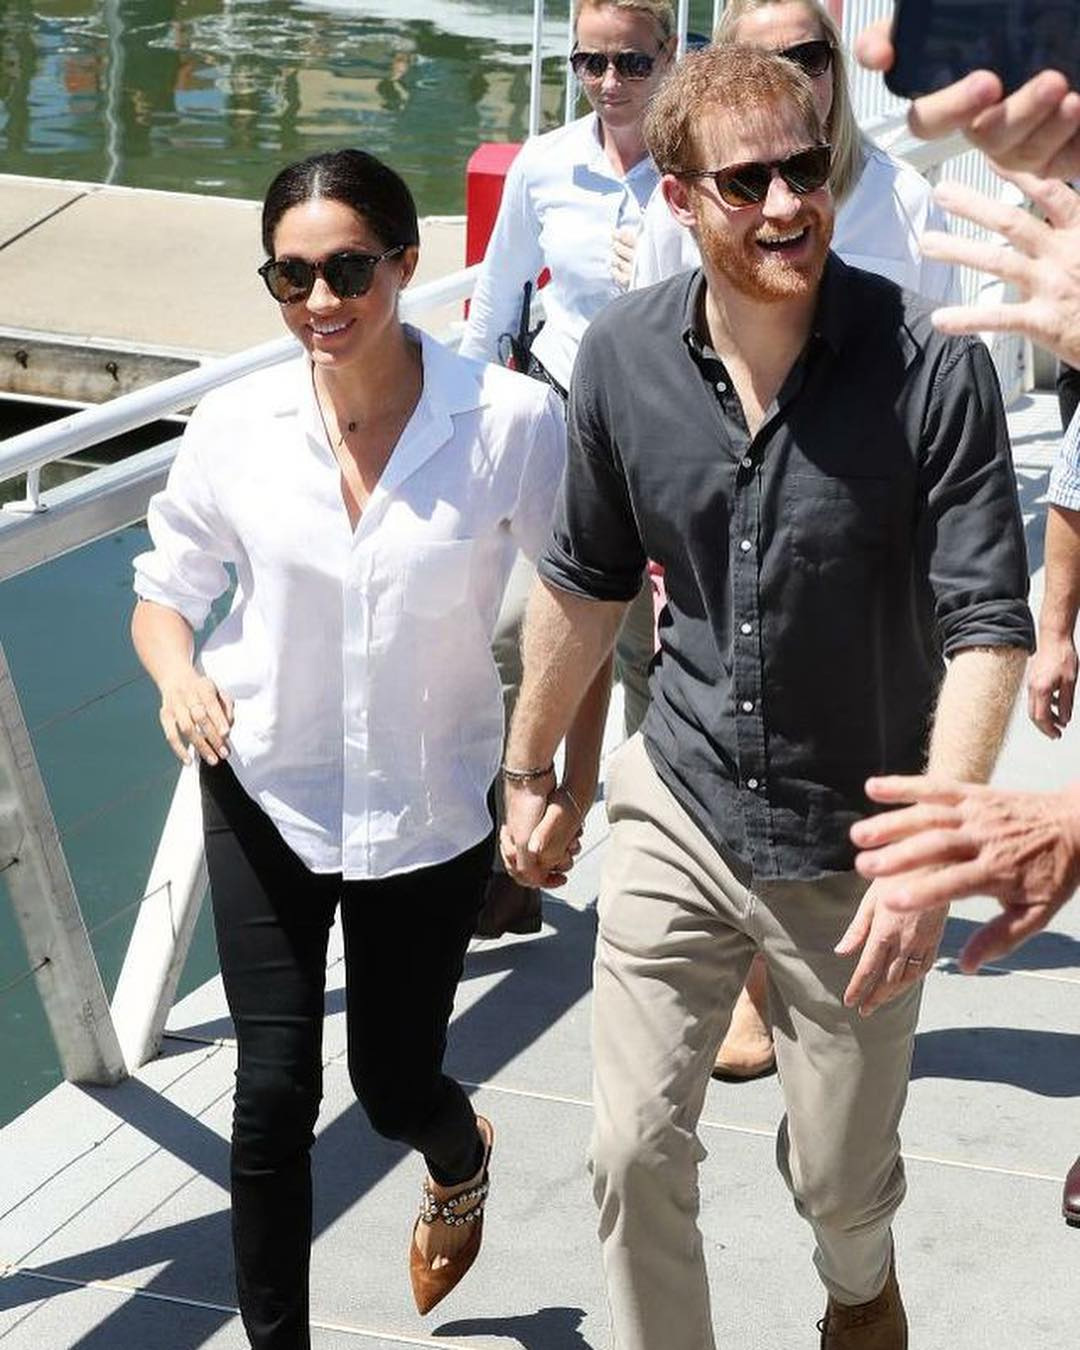 Meghan and Harry departing Fraser Island for Fiji on day 8 of their Oceania tour.